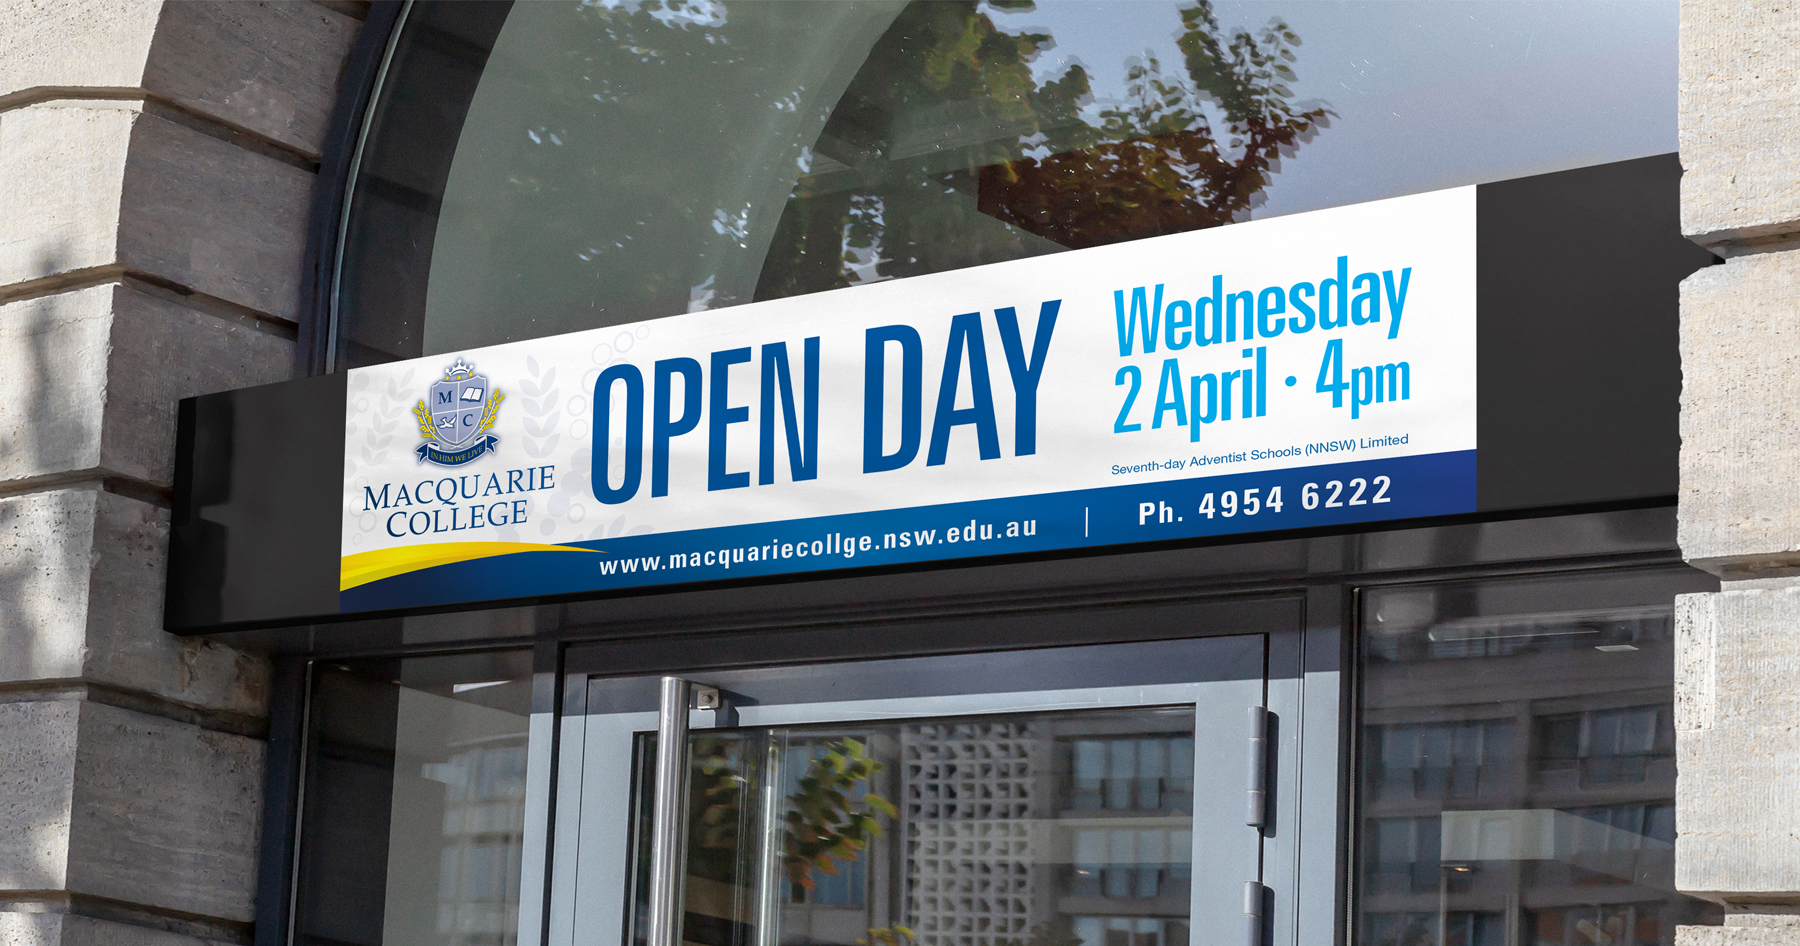 Macquarie College Open Day Signage on Foyer Entry